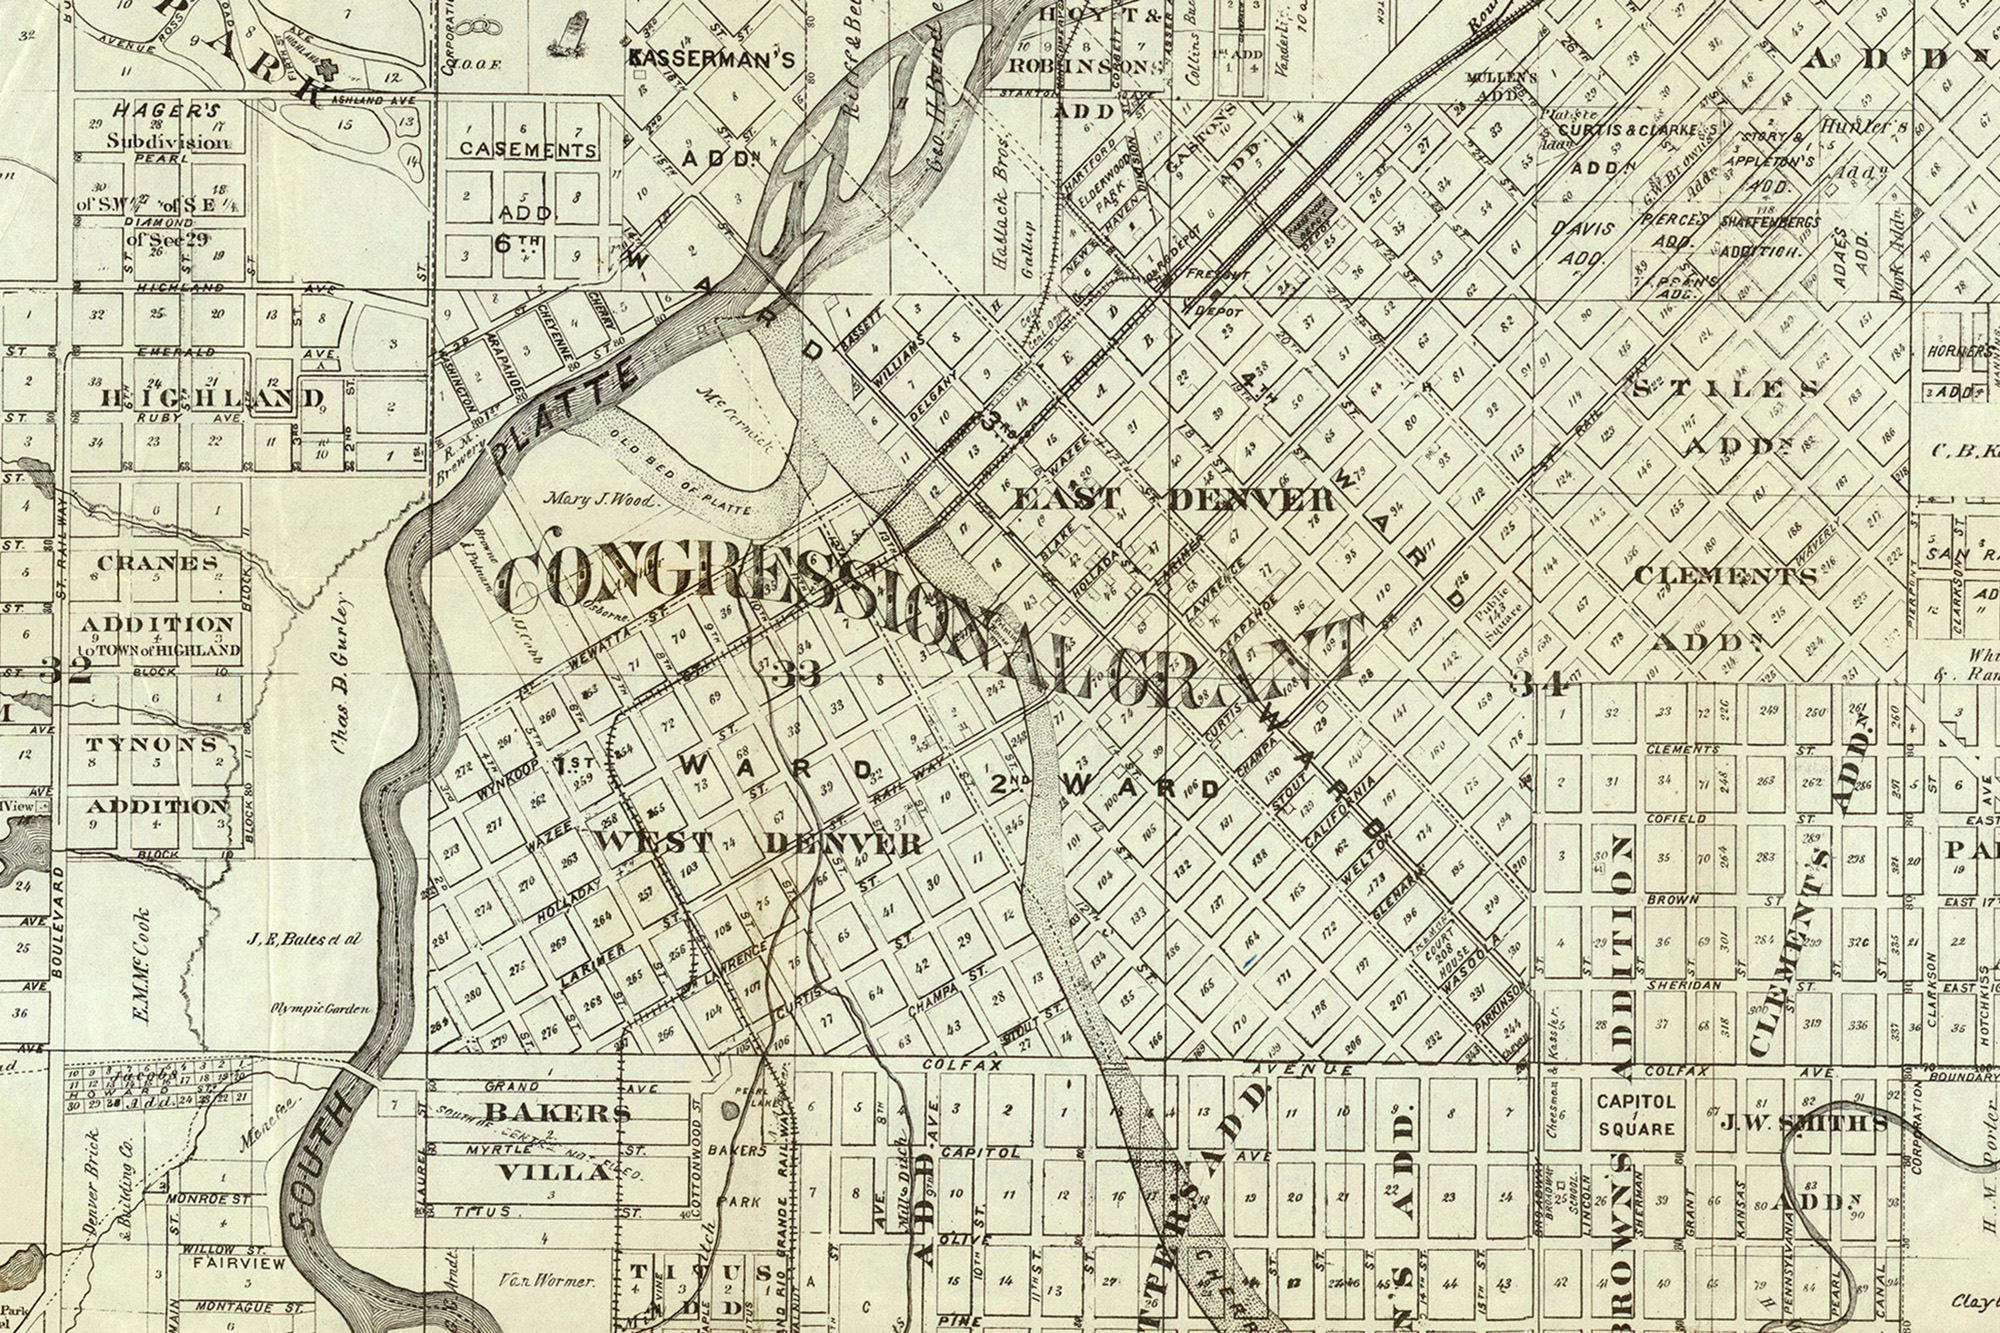 Thayer's Map of 1879 showing the Congressional Grant as part of Denver's physical layout